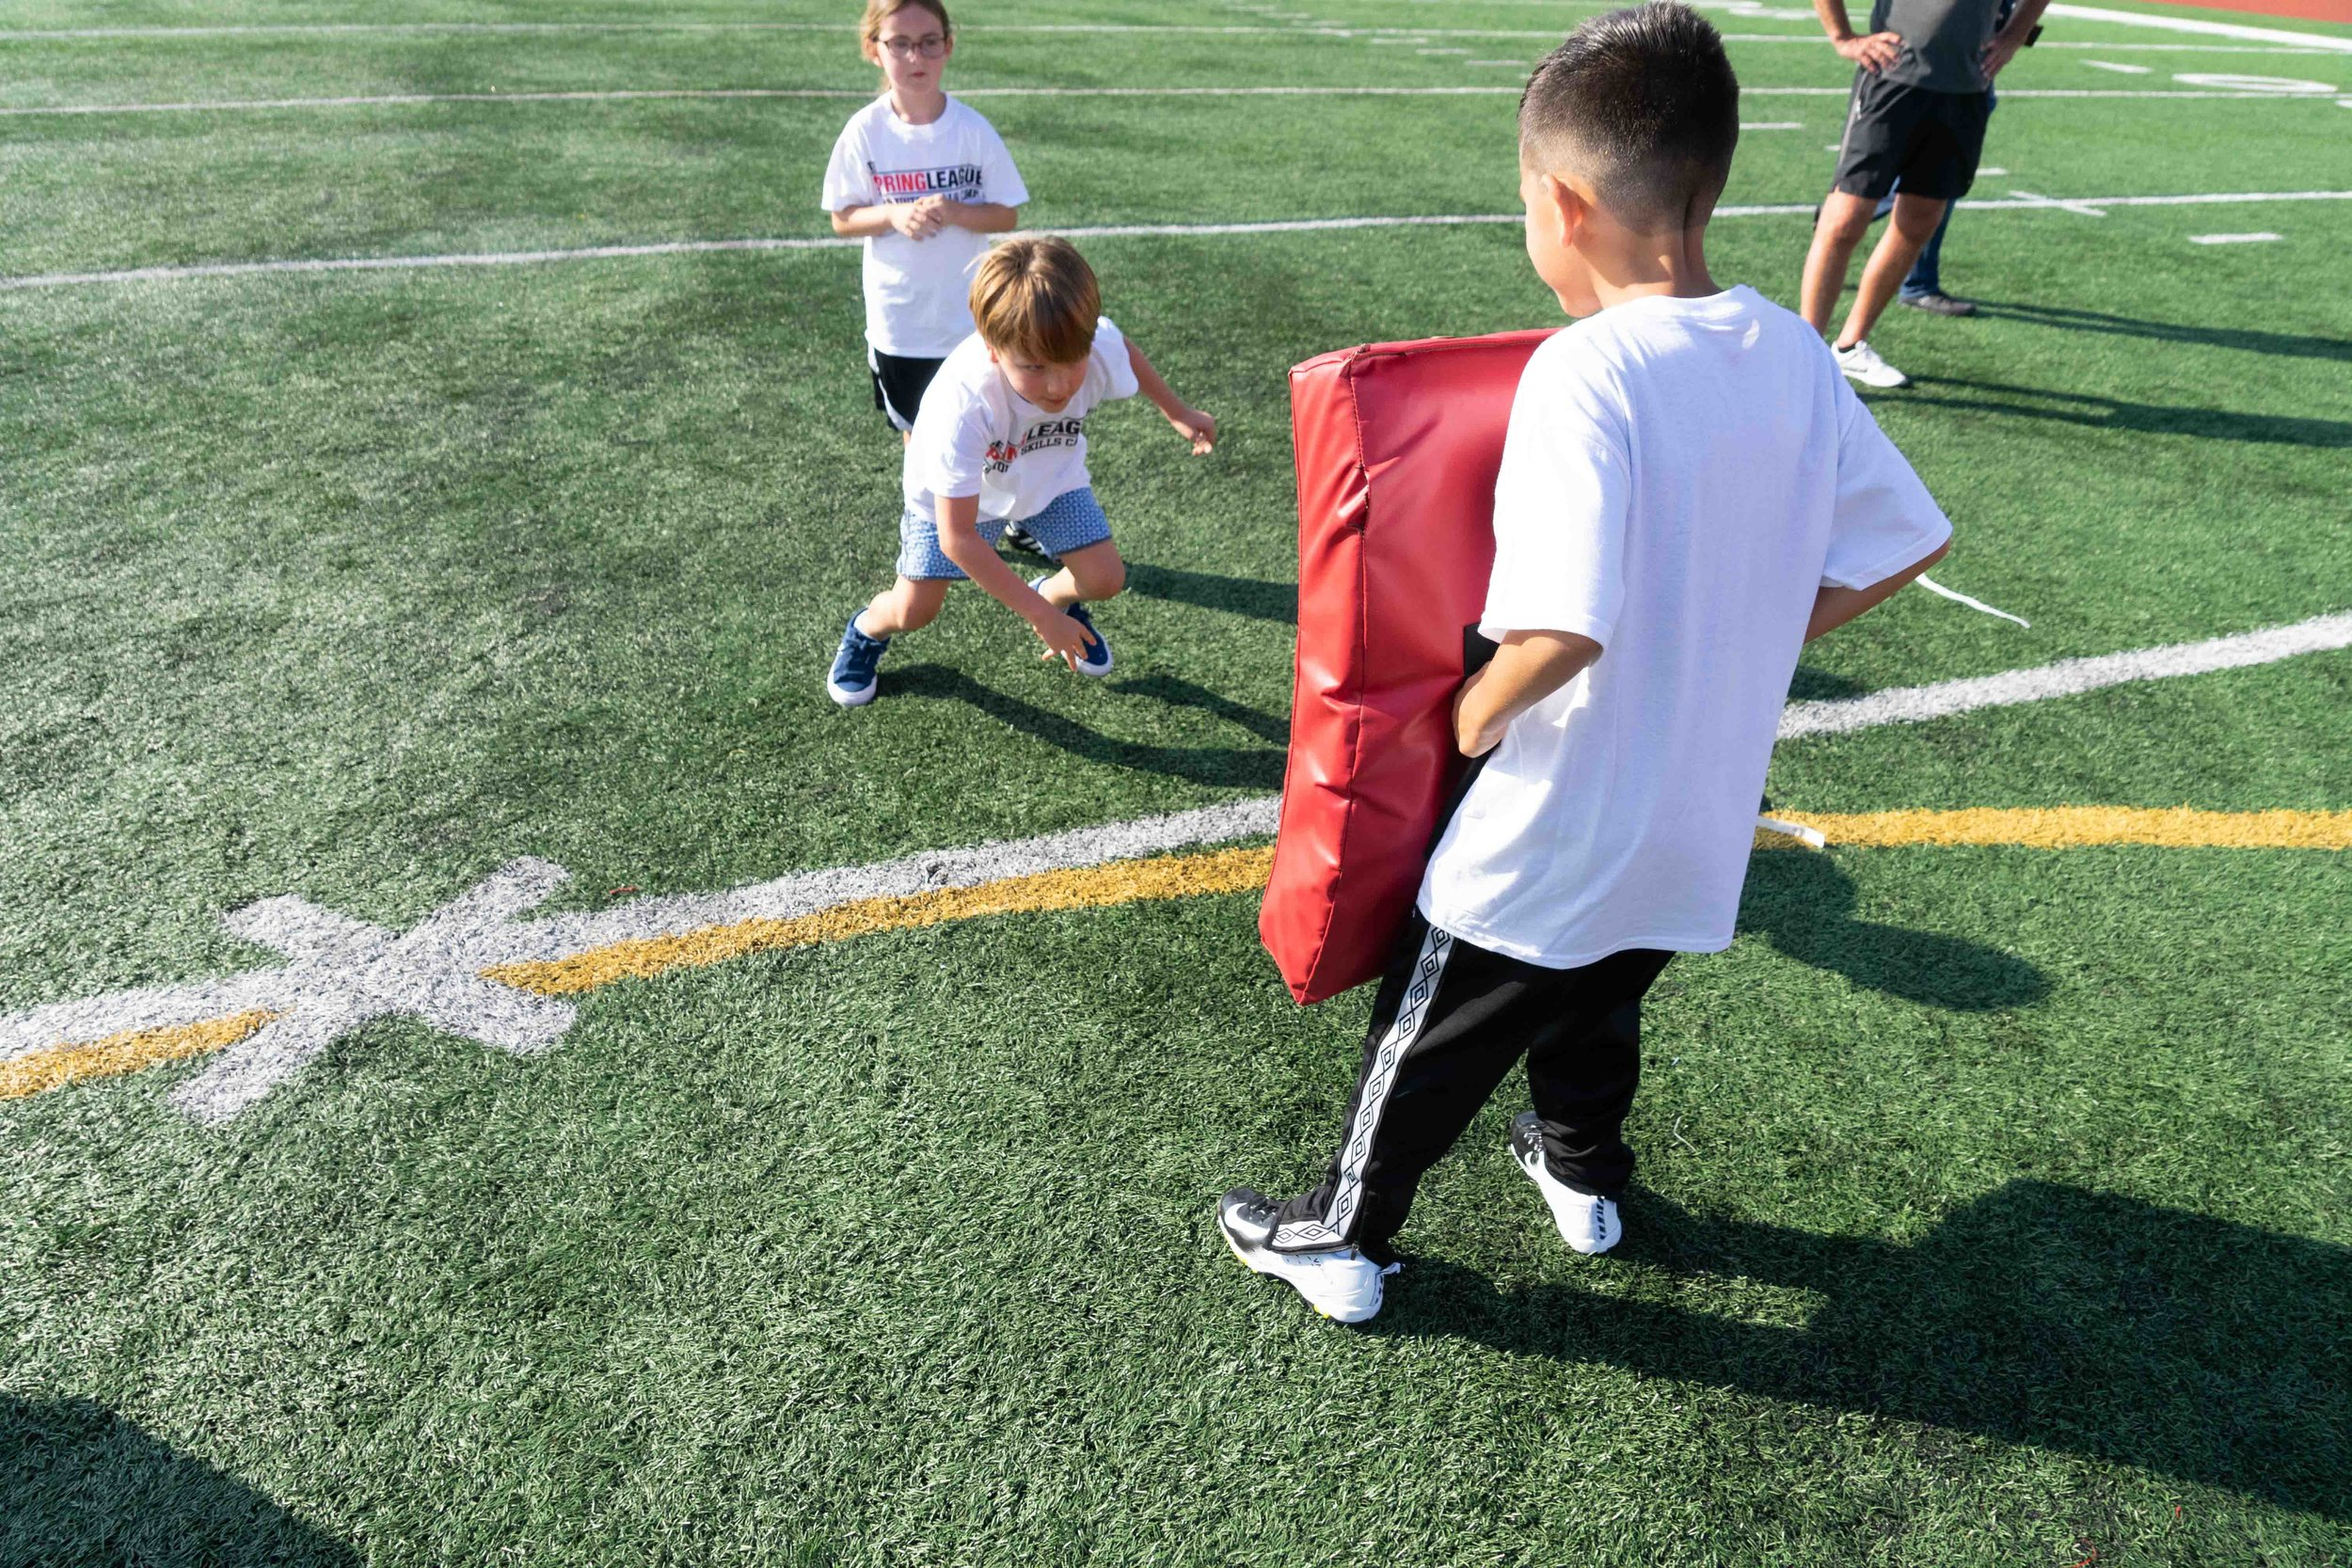 The Spring League Kids Skills Camp-6-2.jpg